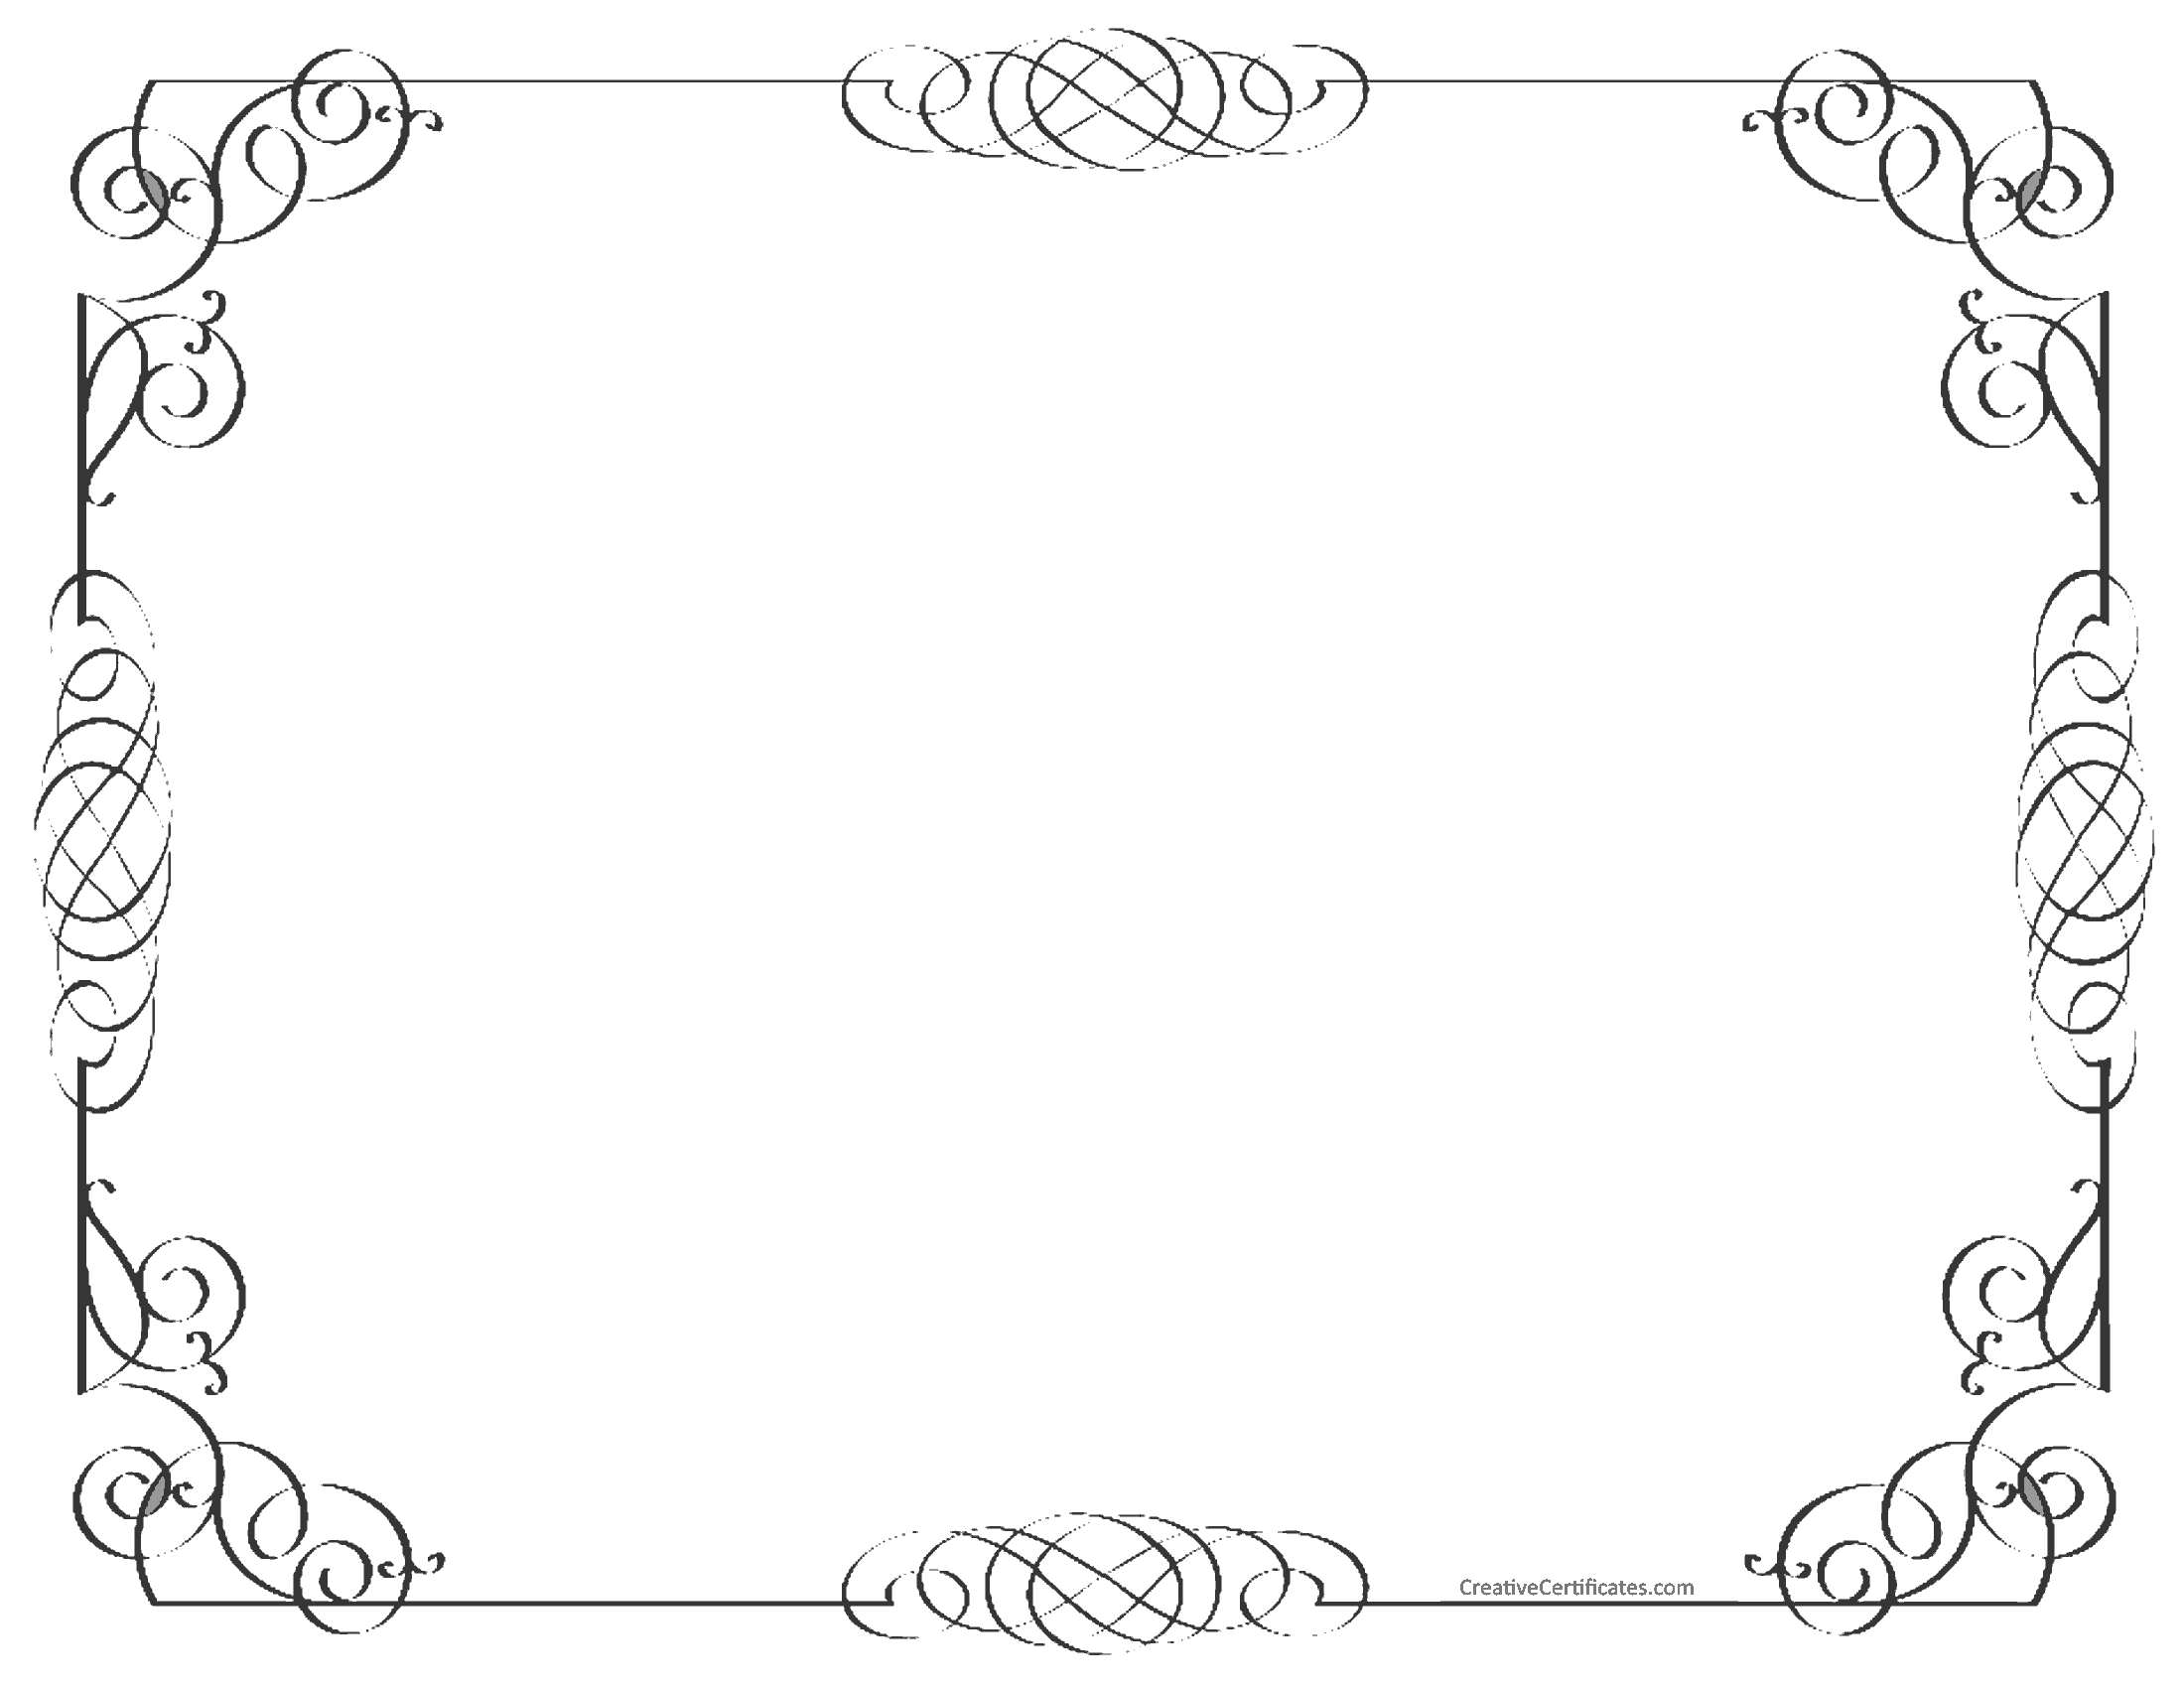 Black And White Border Free Customizable Instant Download